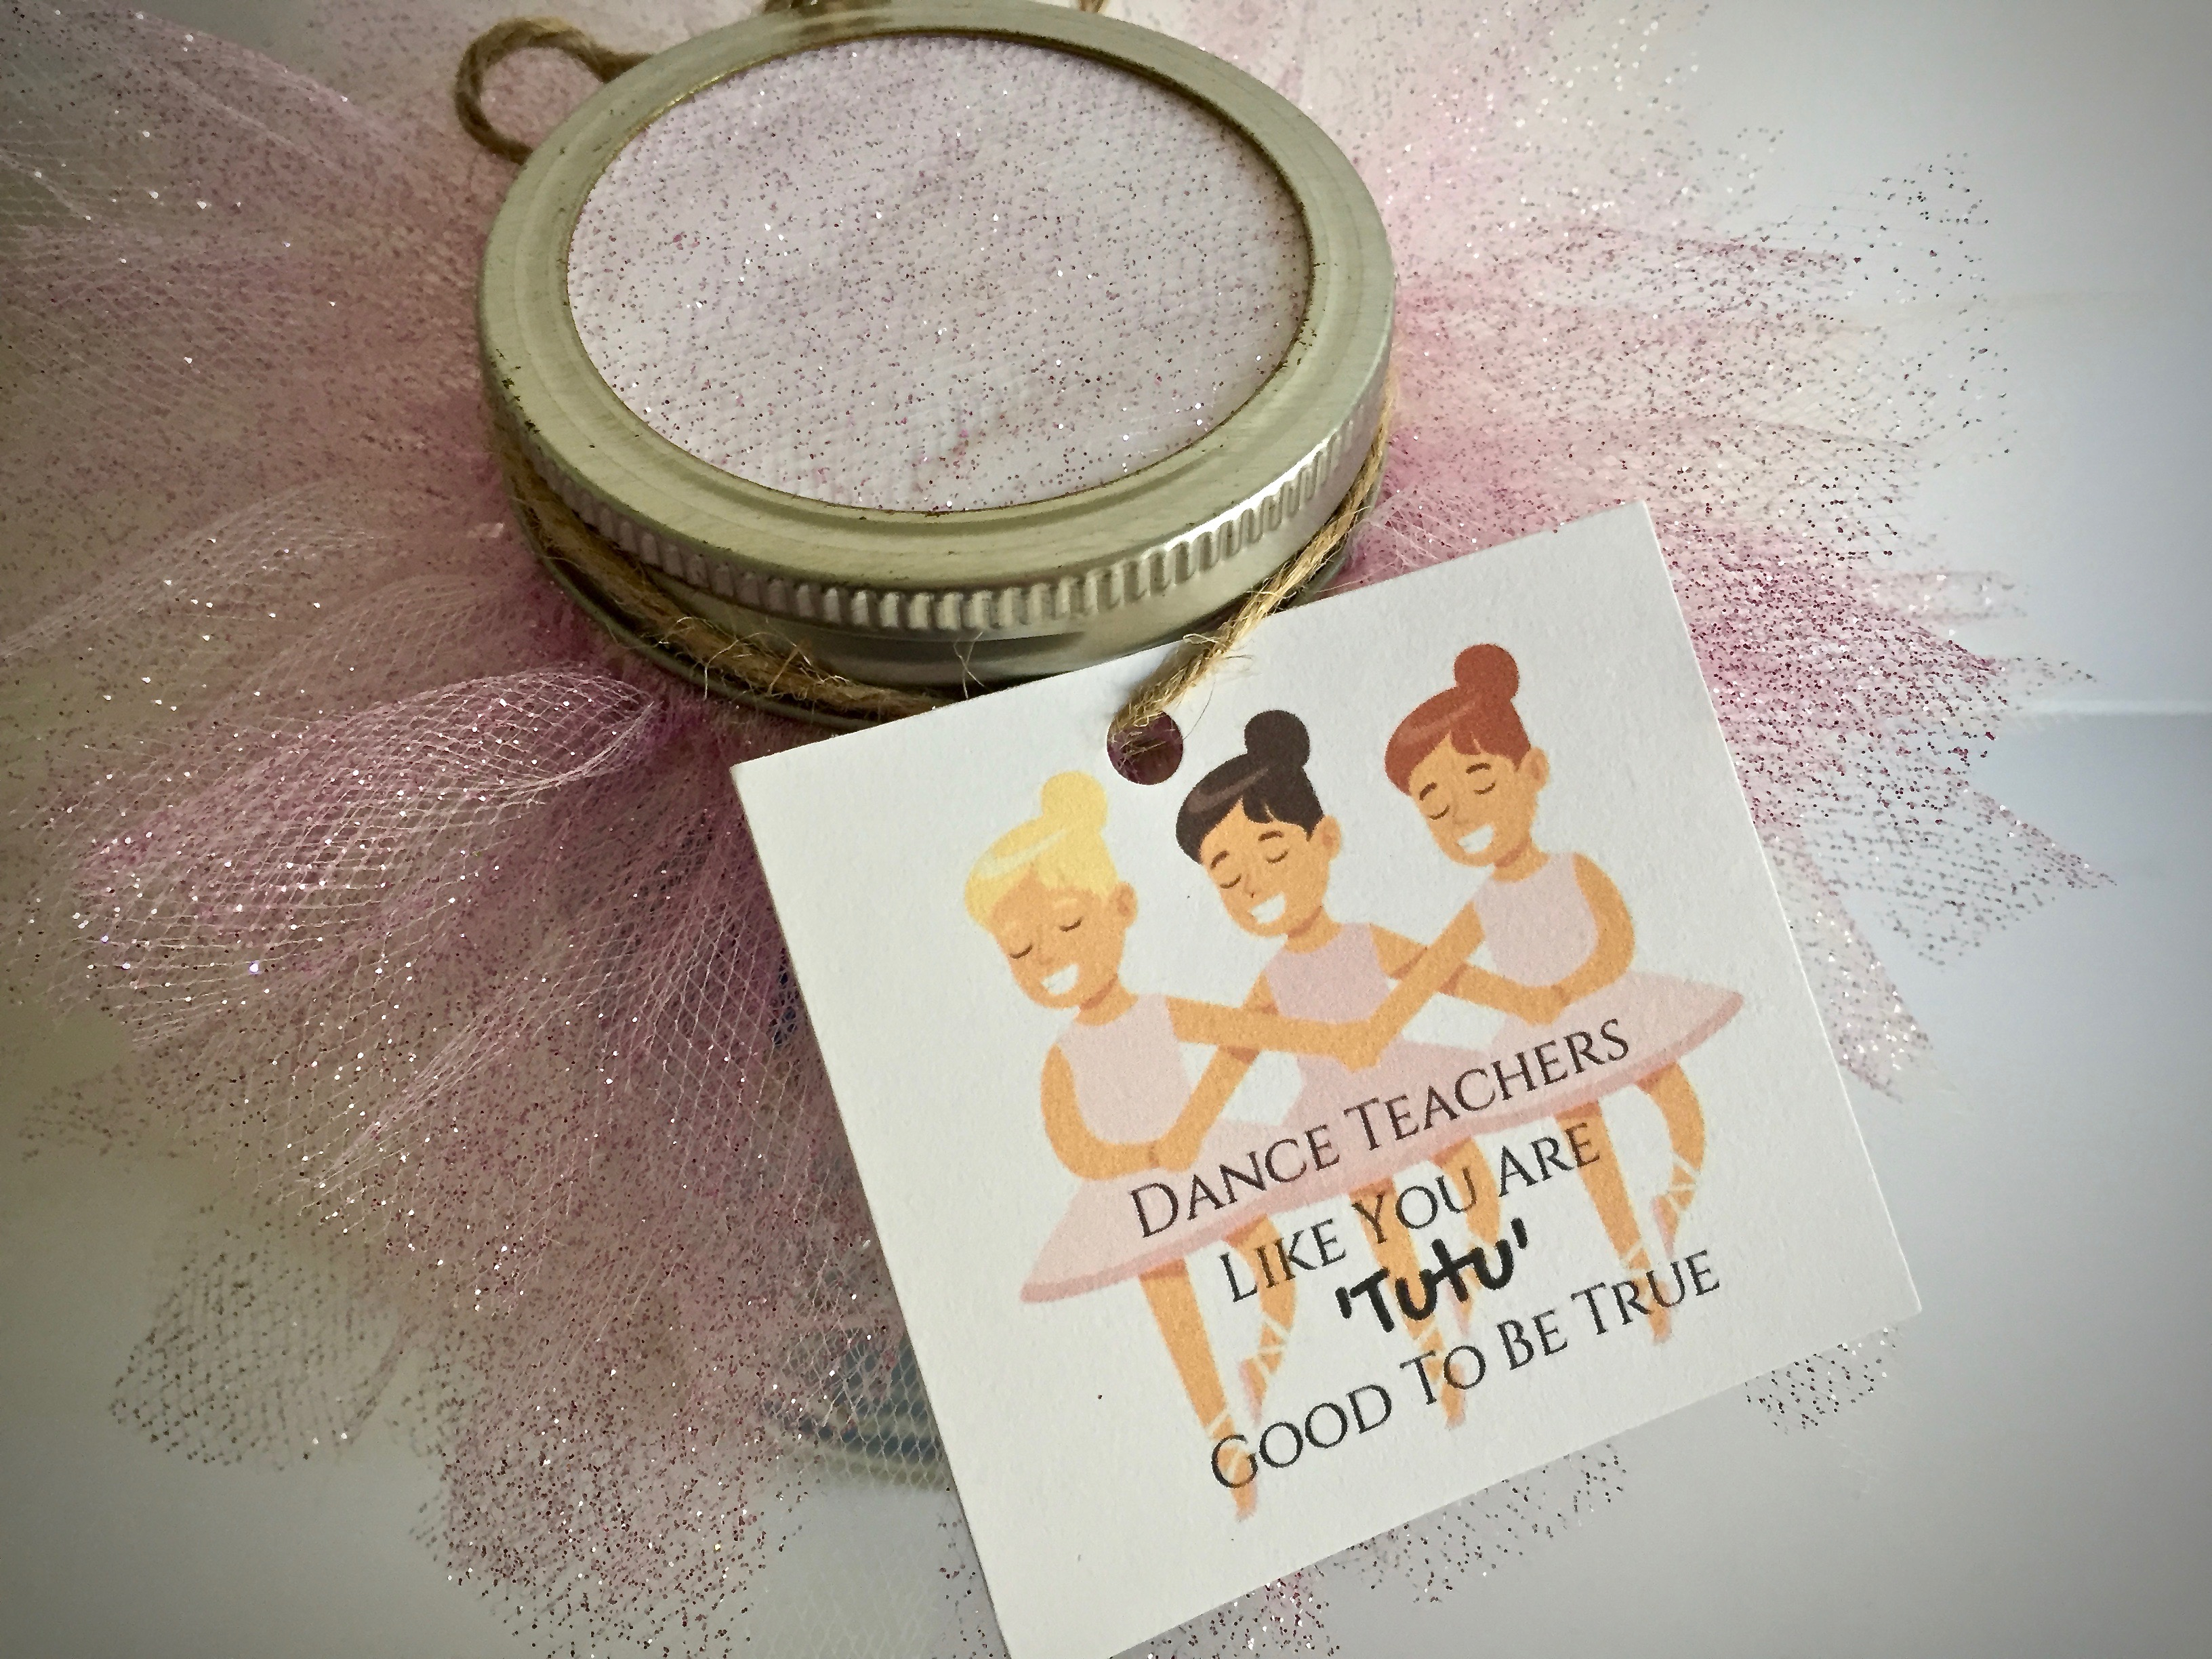 "Jar covered in pink tulle with gift tag that reads ""Dance teachers like you are 'tutu' good to be true"" - Tutu-riffic Gifts For Dancers & Dance Teachers With Printable Gift Tags"